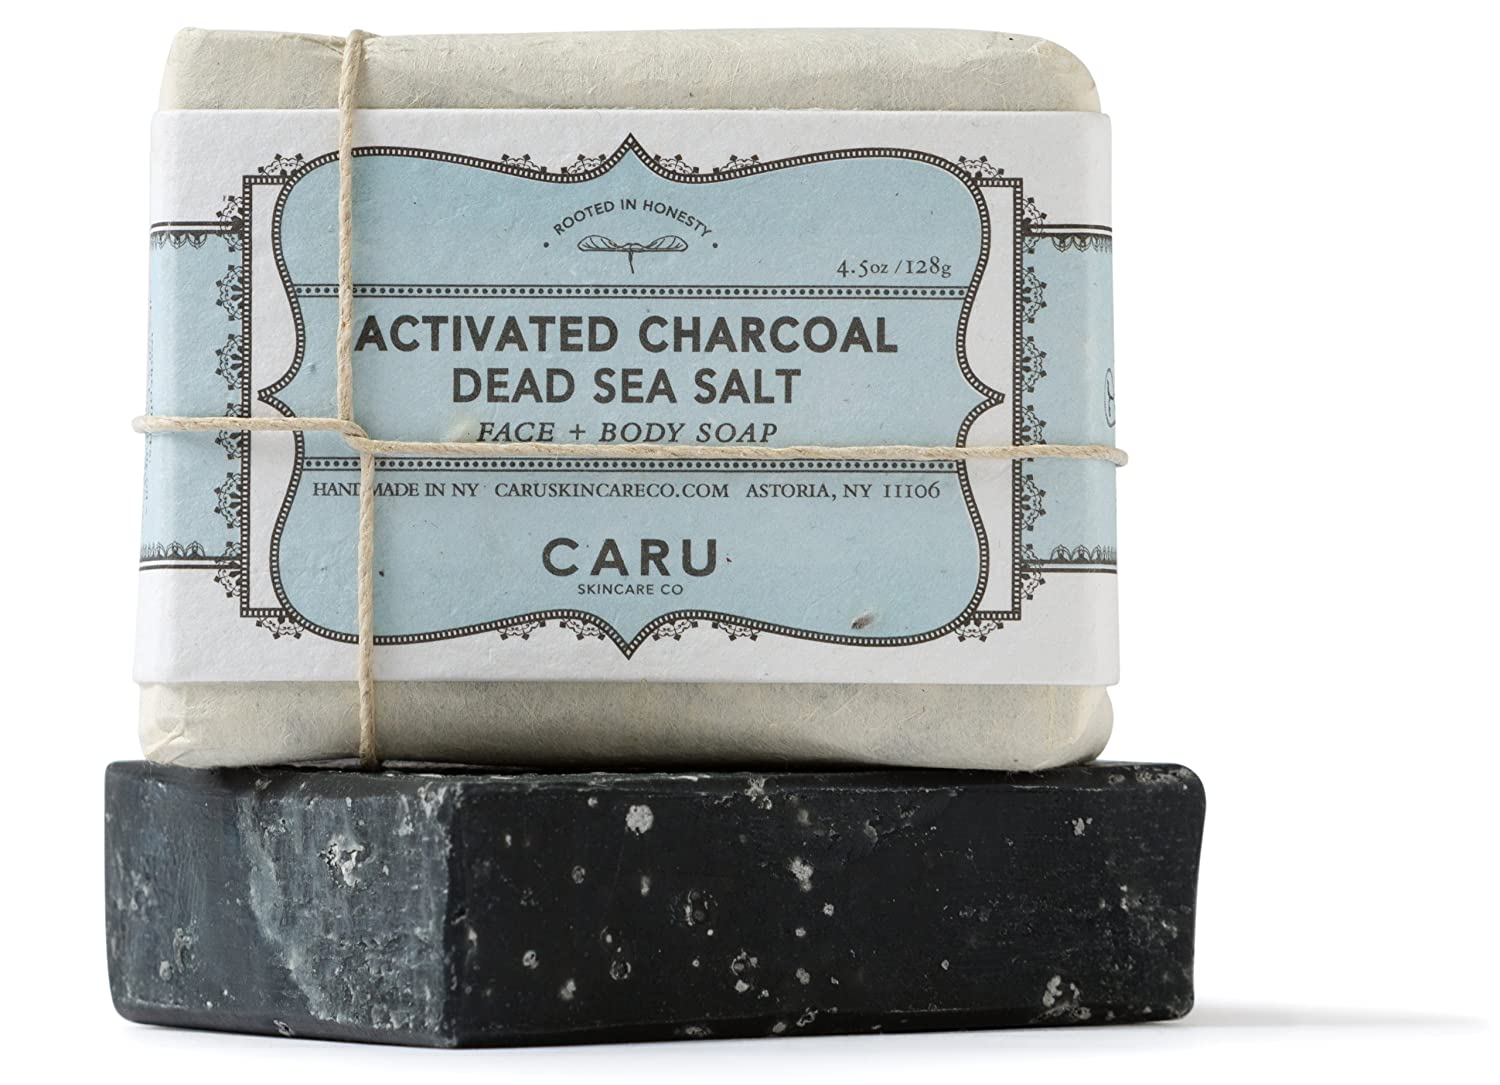 caru-skincare-activated-charcoal-dead-sea-salt-organic-face-soap